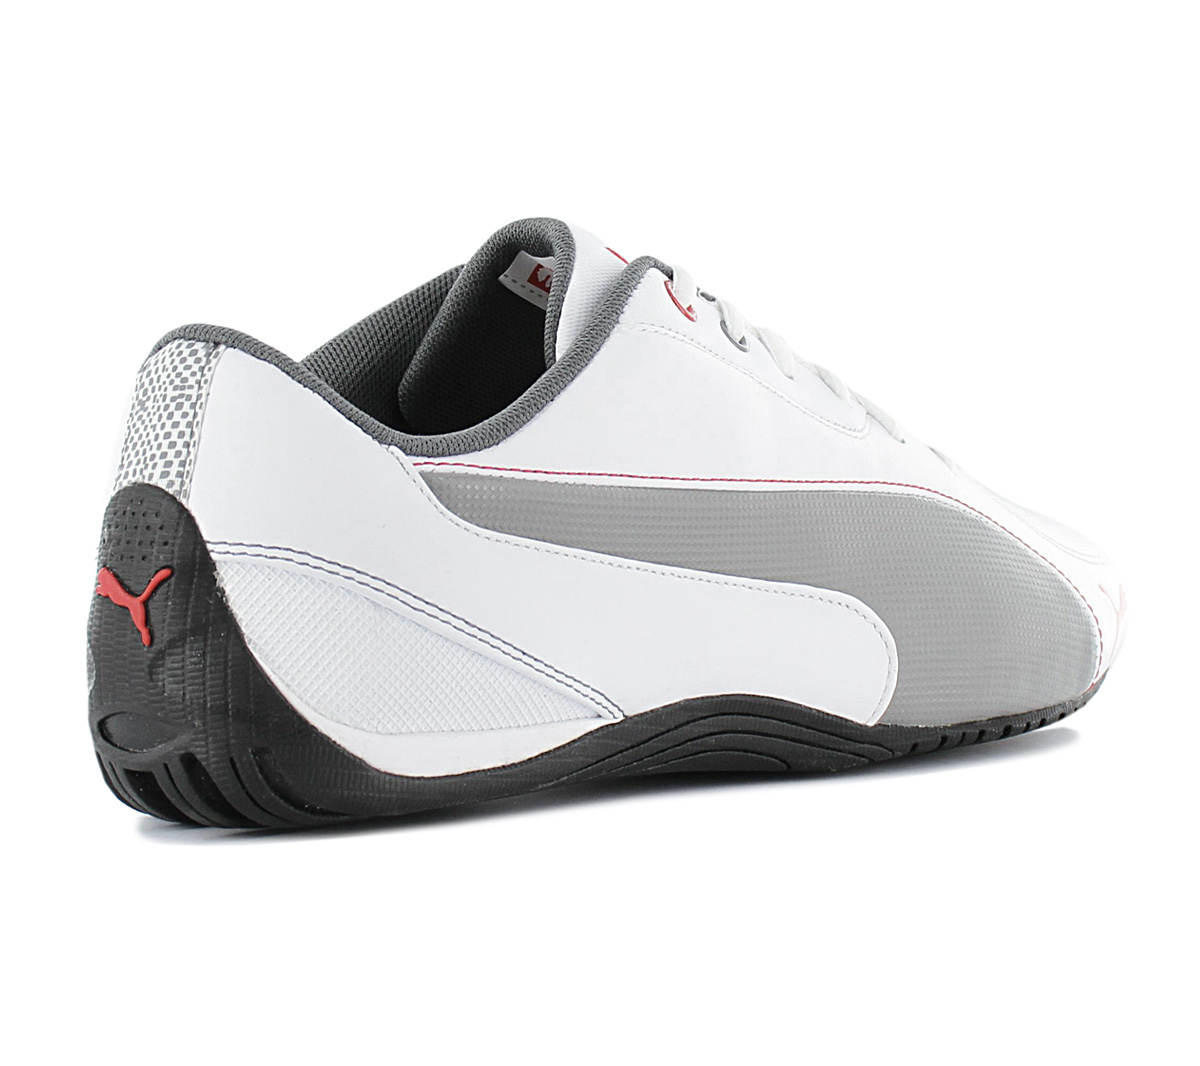 Details about Puma Drift Cat 5 Men's Sneakers 304687 04 White Leather Motorsport Shoes New